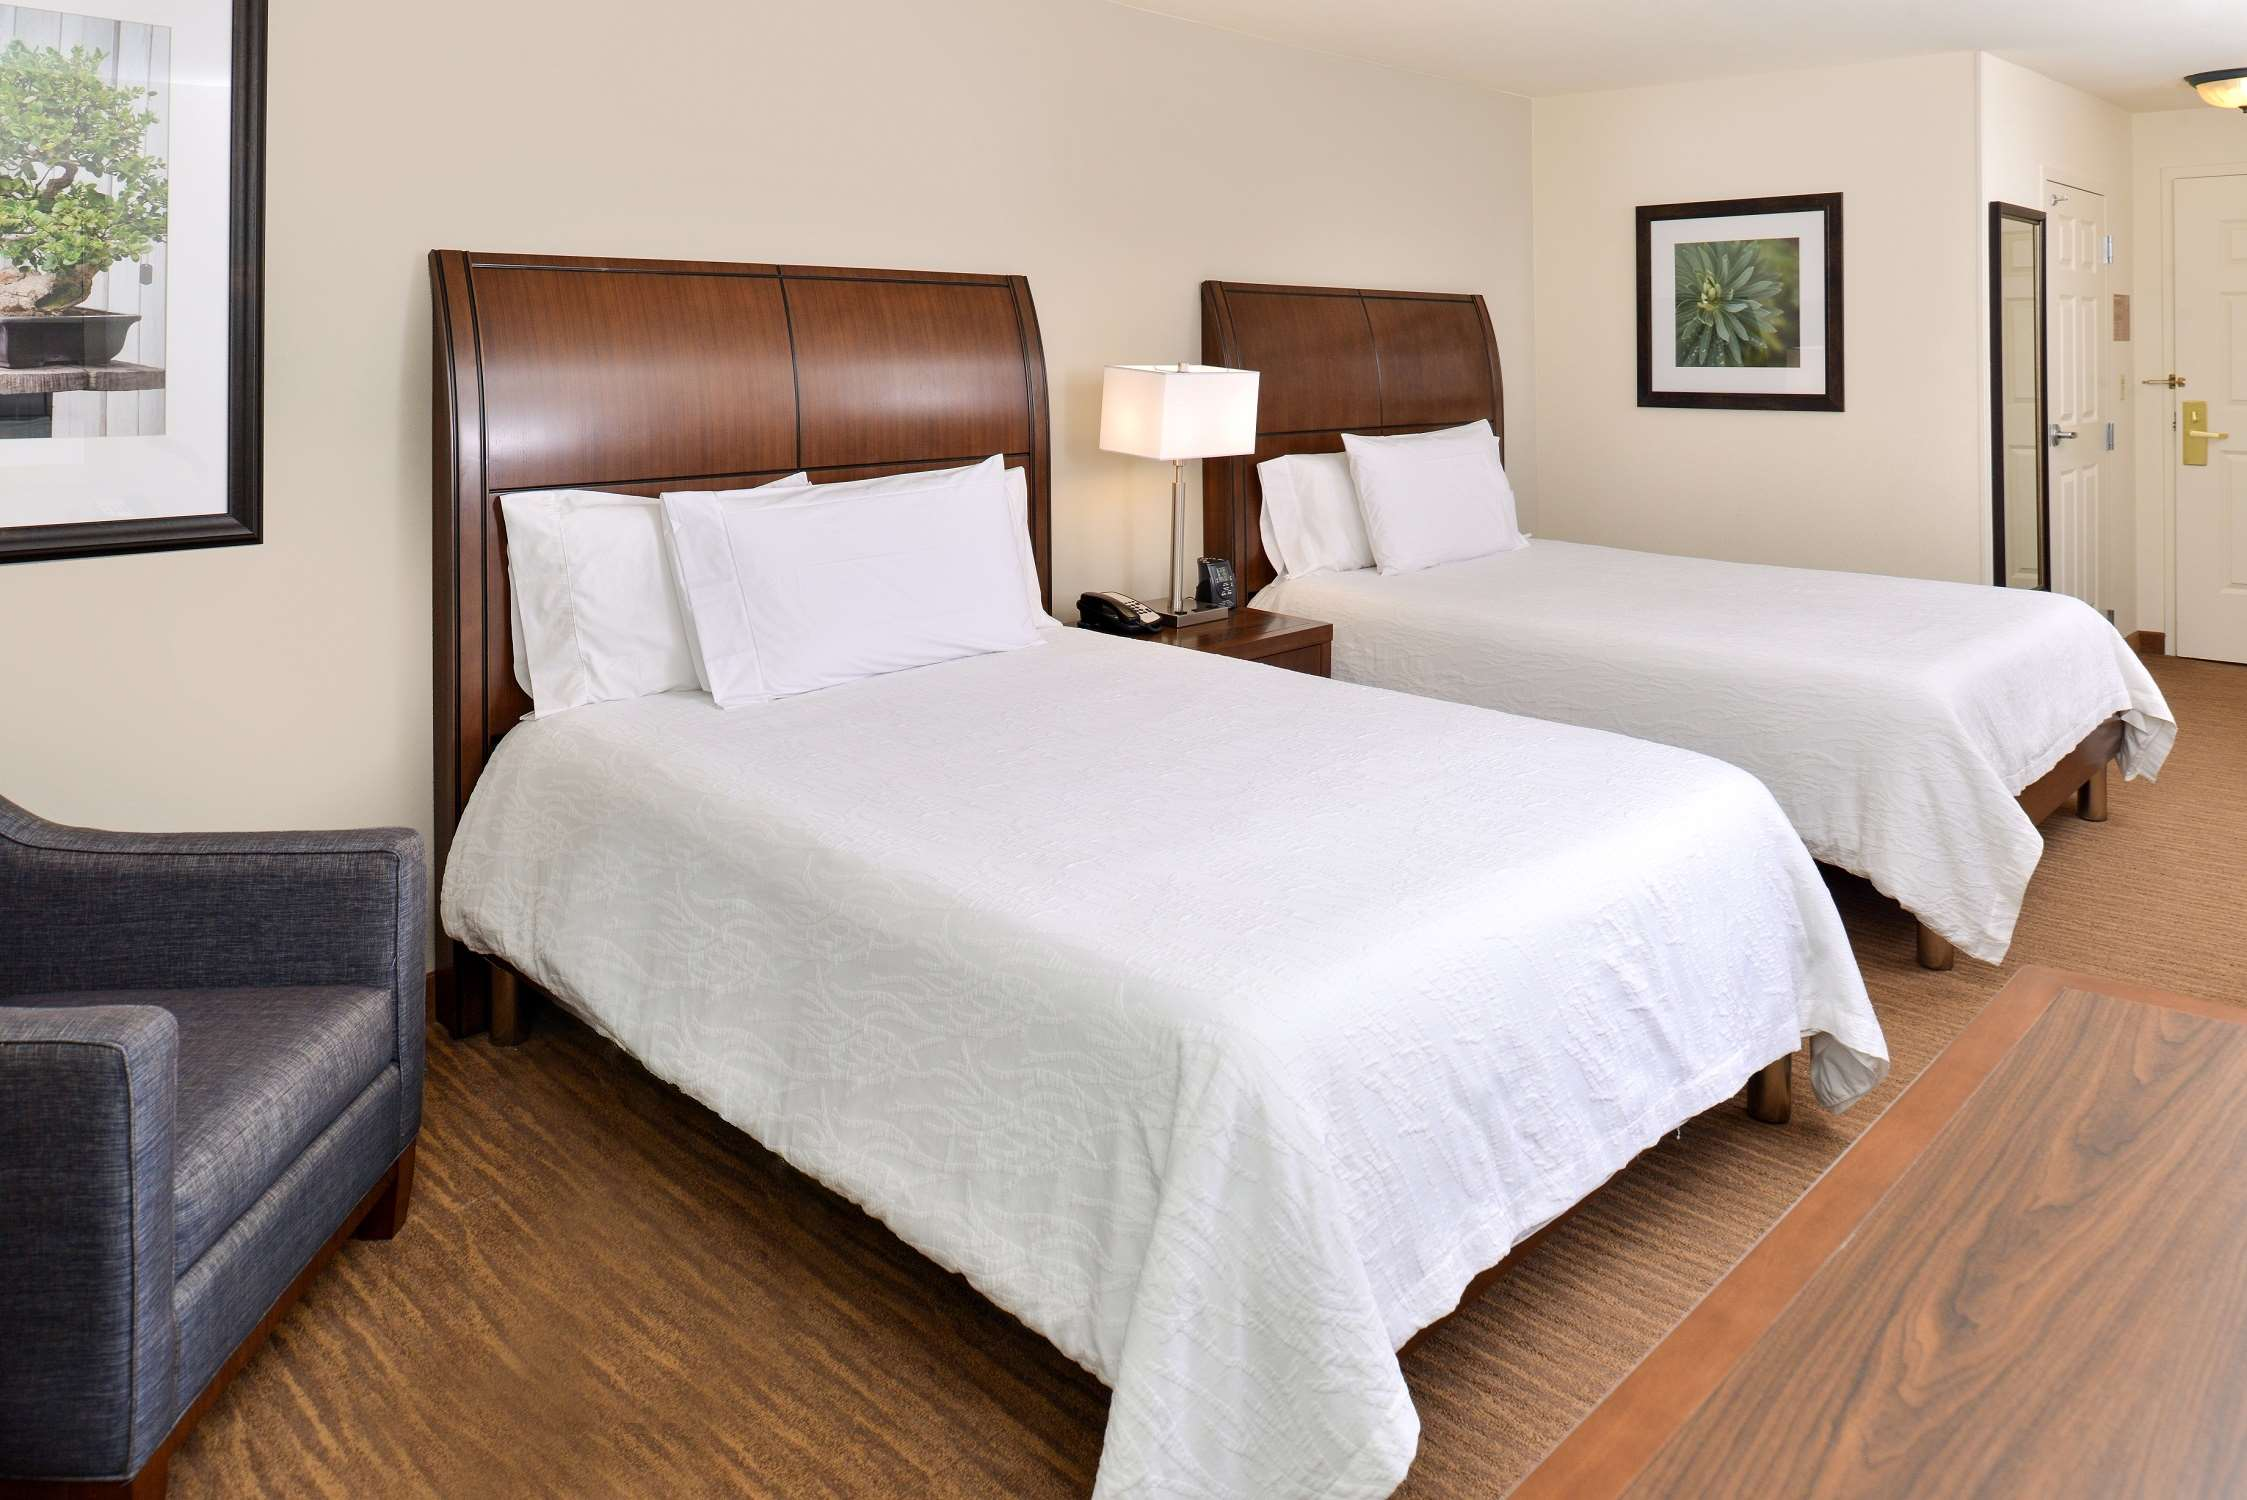 Hilton Garden Inn Dallas/Addison image 31